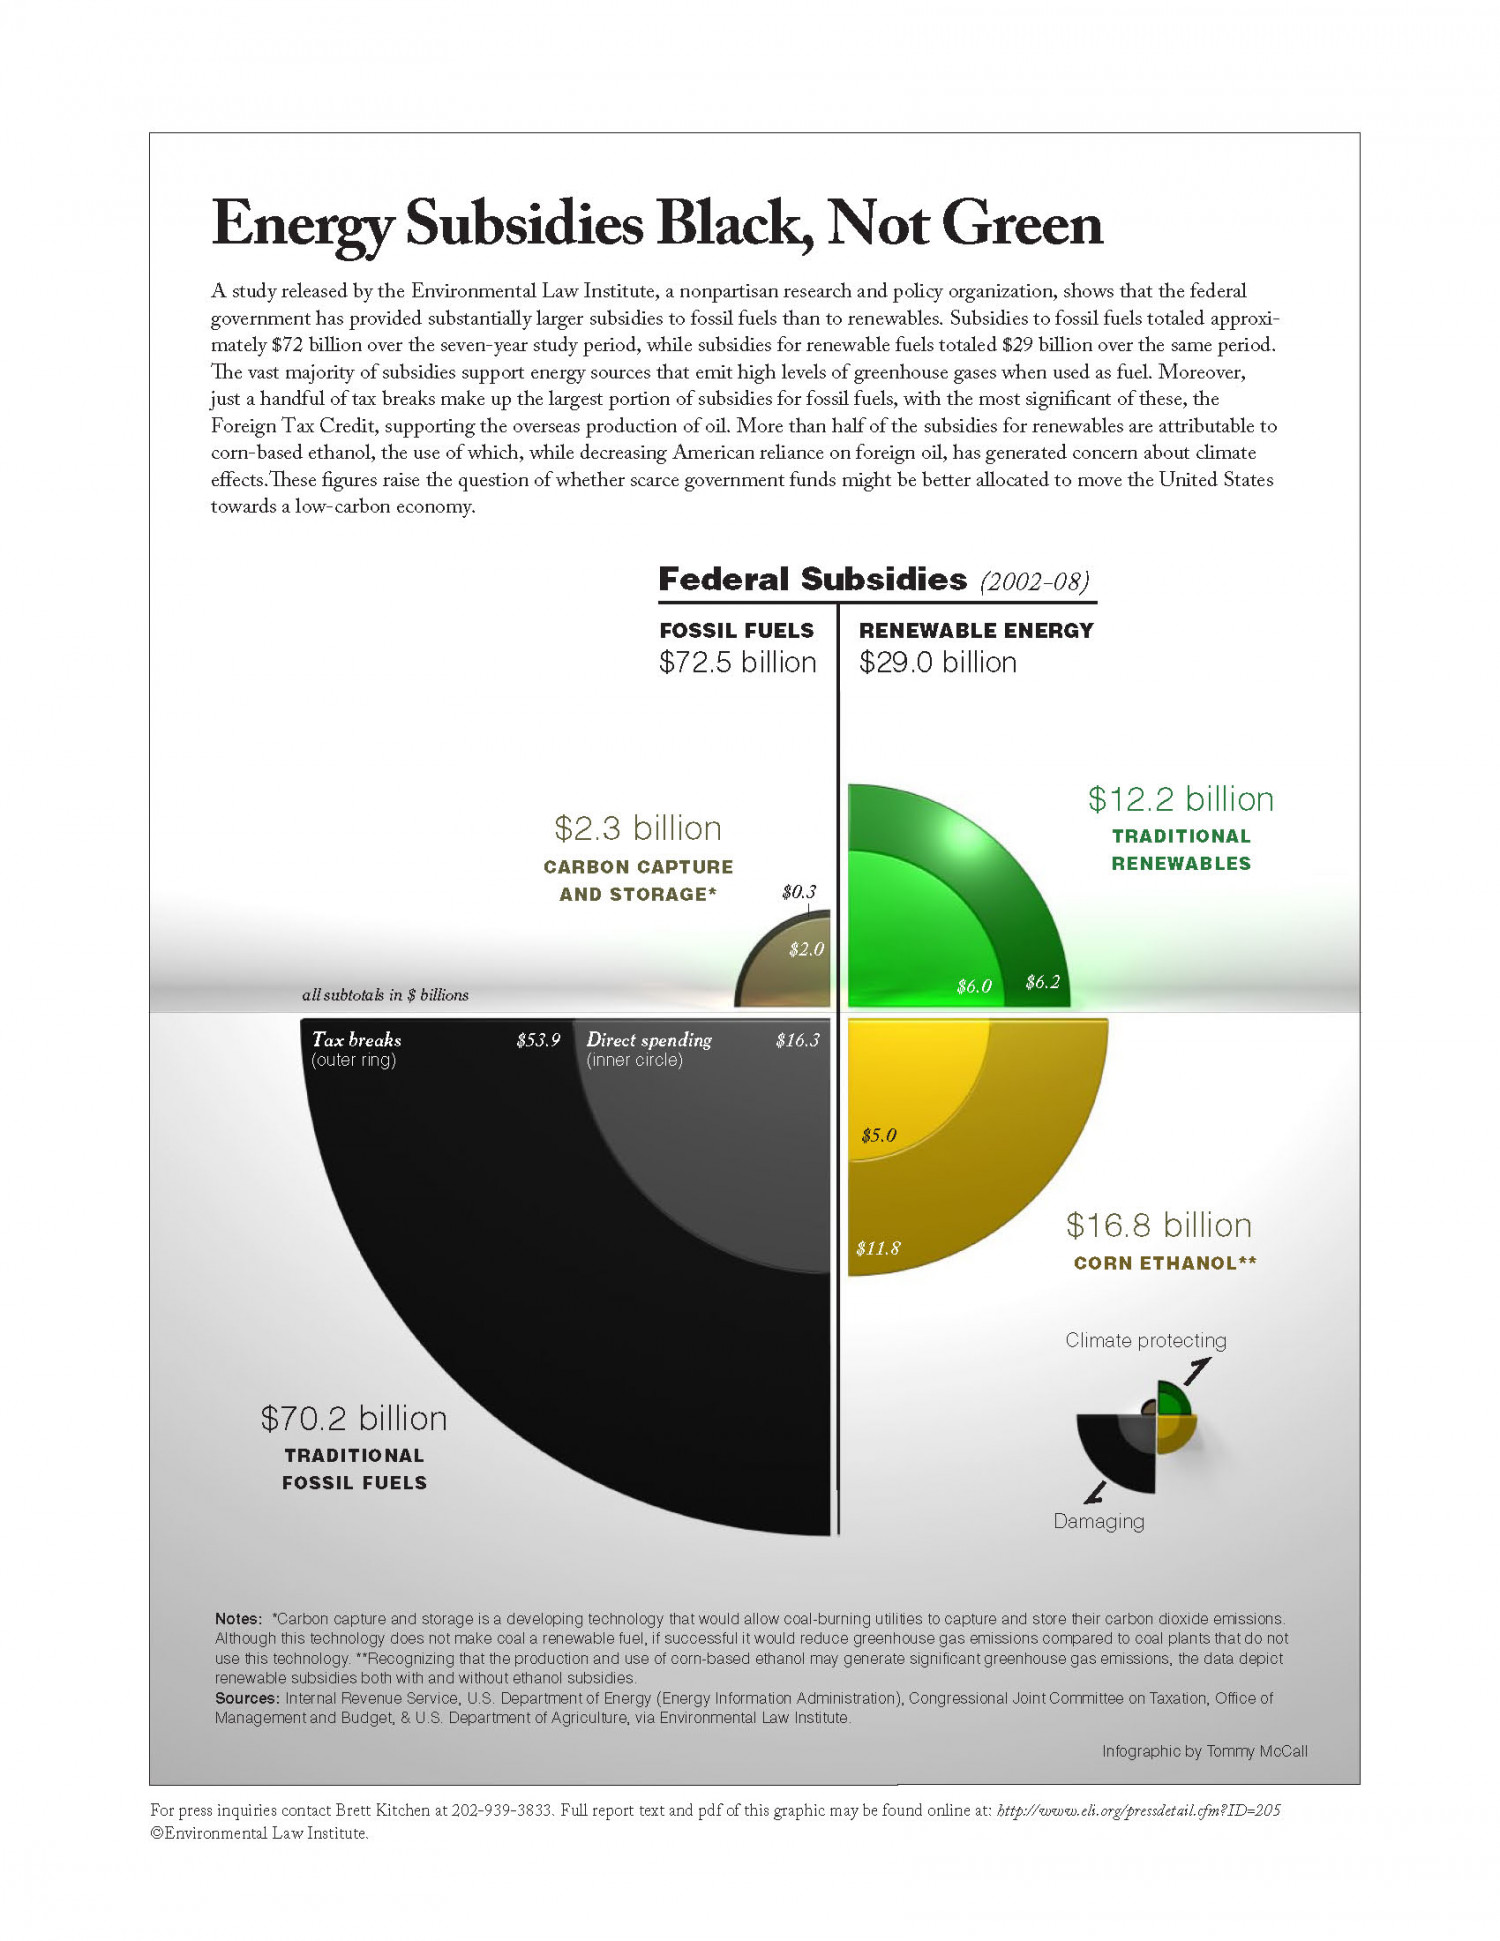 Energy Subsidies Black, Not Green Infographic